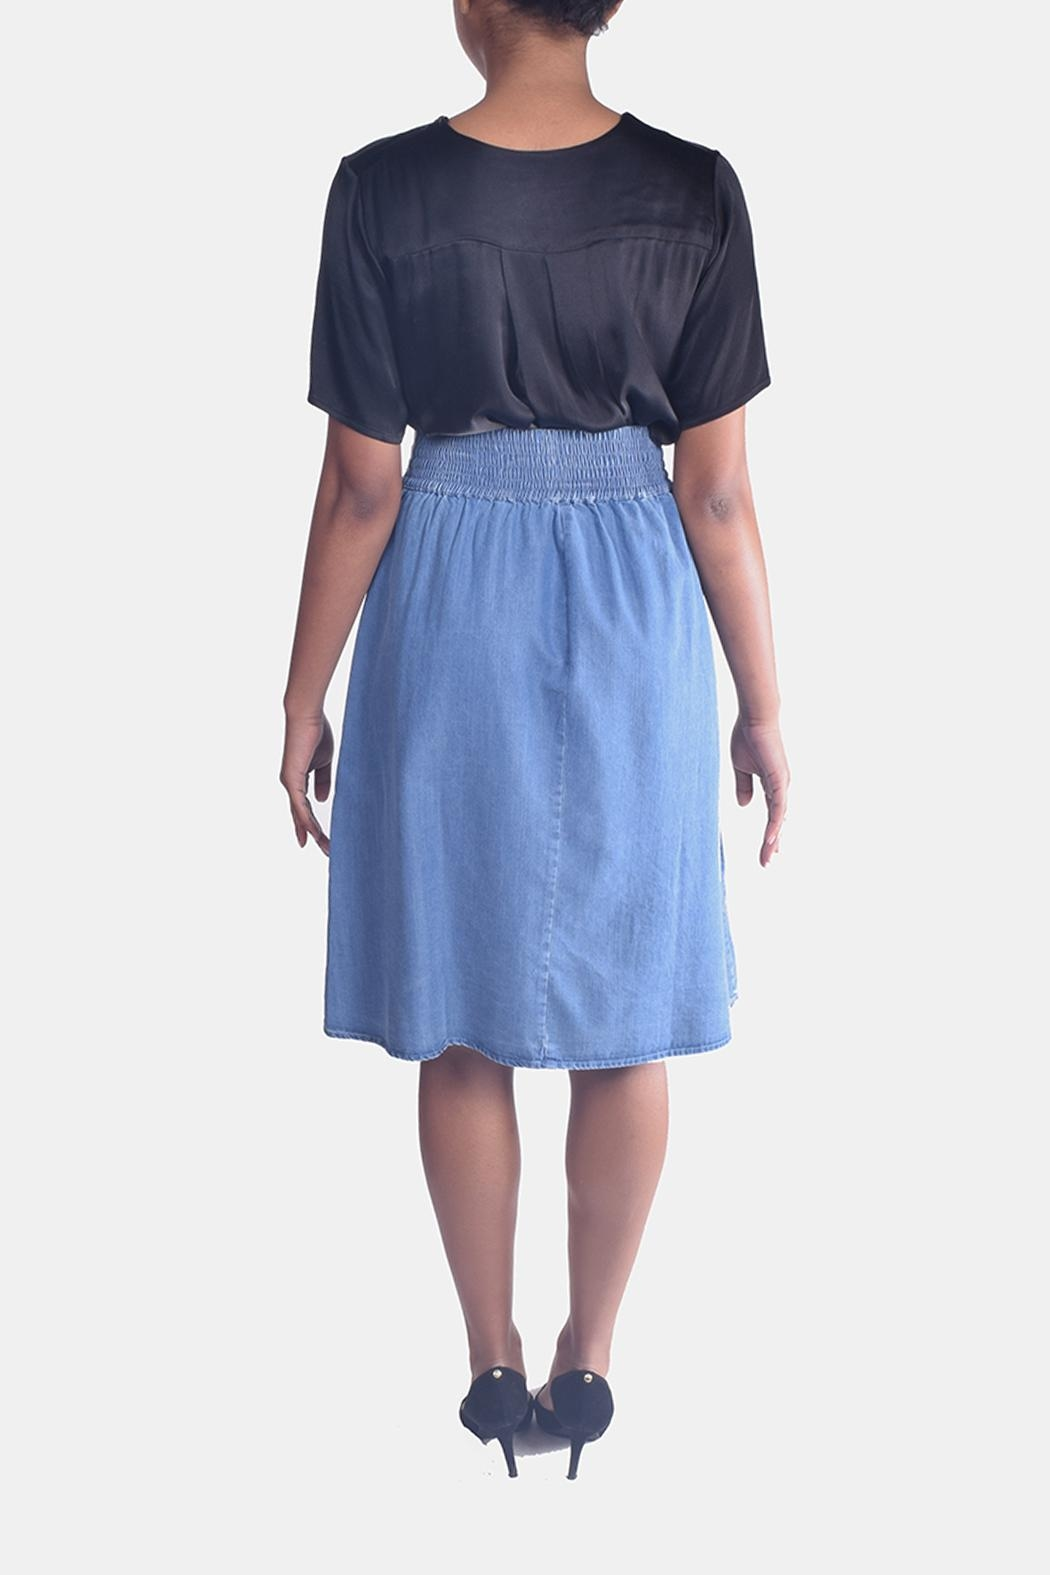 Skies Are Blue Corset Denim Skirt - Back Cropped Image